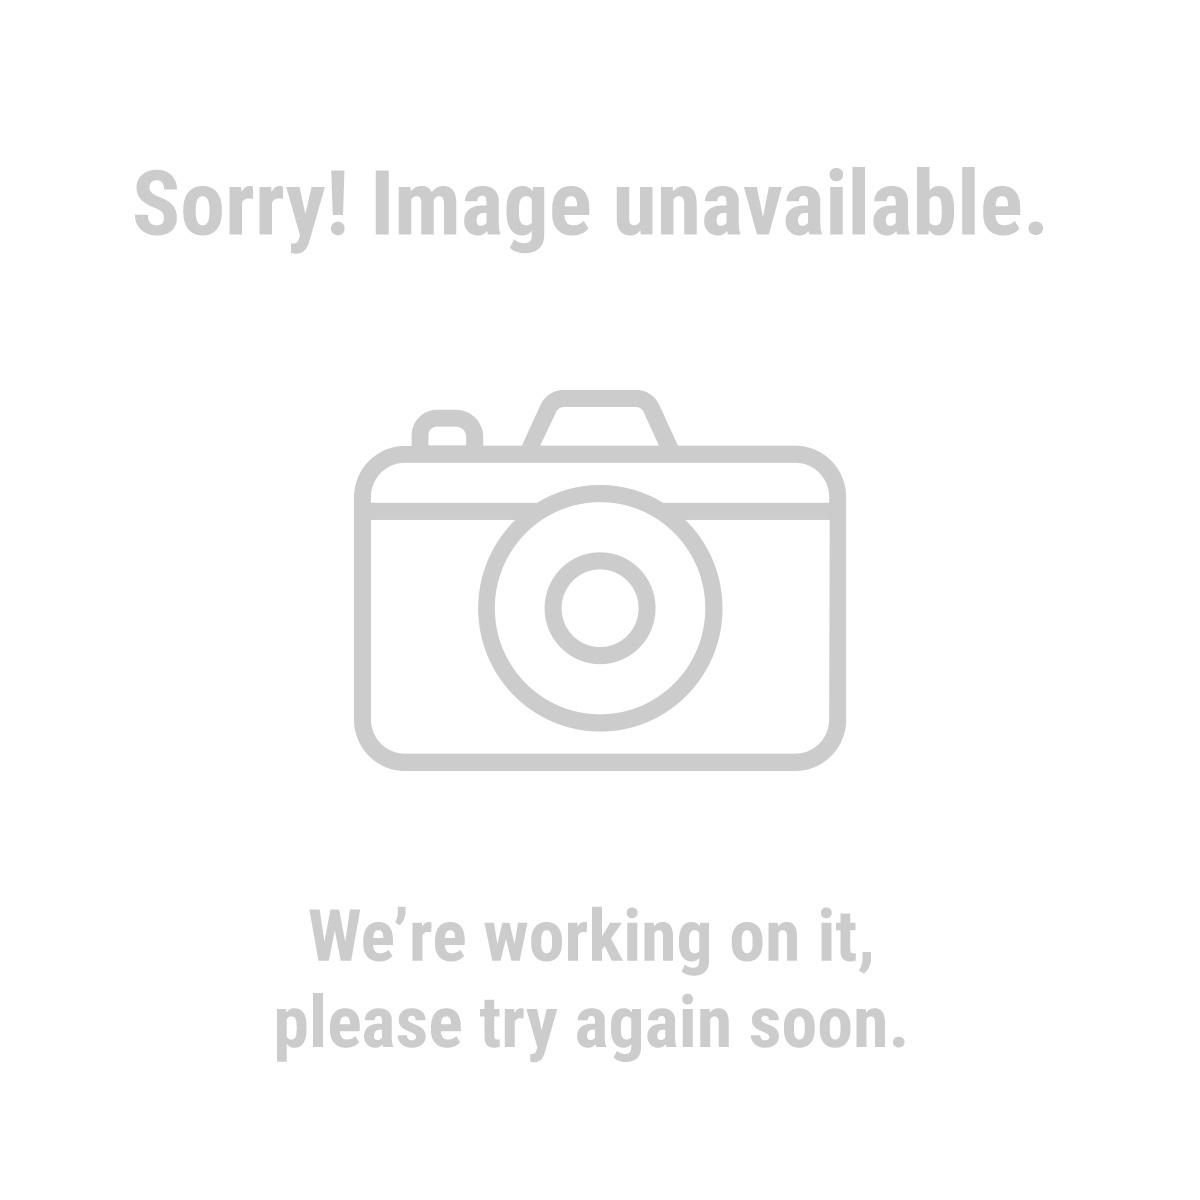 Western Safety 97443 Mechanic's Gloves with Spandex, X-Large